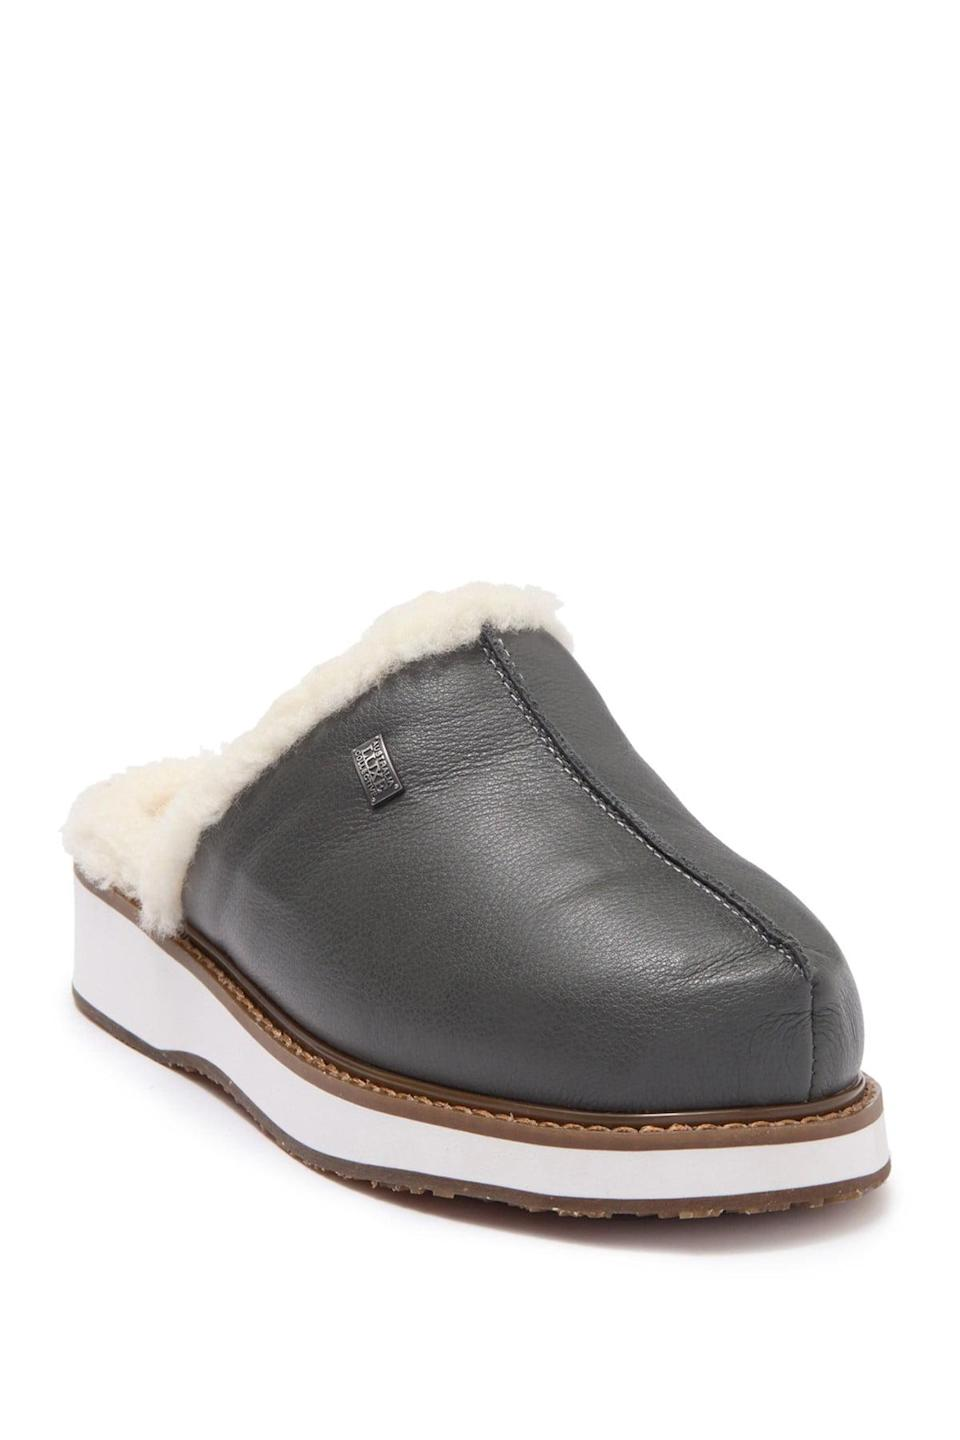 """<h2>Australia Luxe Collective Shearling Supper Mule</h2><br>These smoky gray slip-ons are a luxury-level steal, with a fancy real shearling lining and grippy, logo-ed soles. <br><br><strong>Australia Luxe Collective</strong> Vegan Leather Genuine Shearling Supper Mule, $, available at <a href=""""https://go.skimresources.com/?id=30283X879131&url=https%3A%2F%2Fwww.nordstromrack.com%2Fs%2Faustralia-luxe-collective-vegan-leather-genuine-shearling-supper-mule%2Fn3454458%3Fcolor%3DSMOKE"""" rel=""""nofollow noopener"""" target=""""_blank"""" data-ylk=""""slk:Nordstrom Rack"""" class=""""link rapid-noclick-resp"""">Nordstrom Rack</a>"""